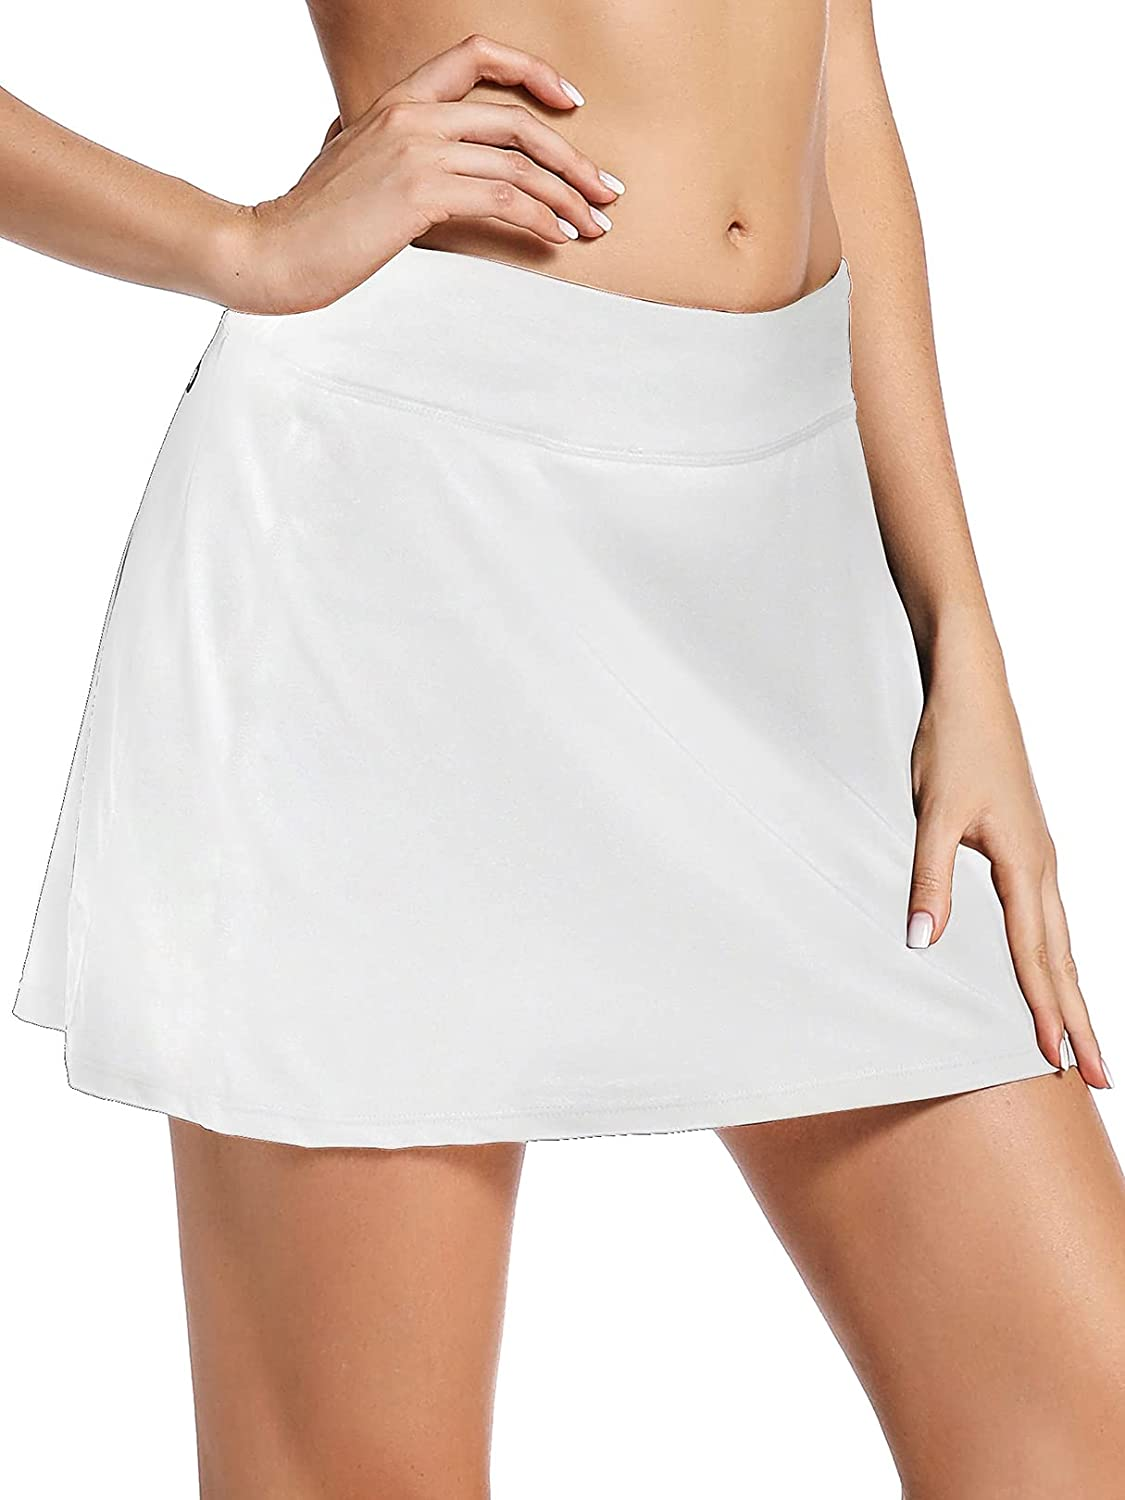 Jessie Kidden Women's Athletic Stretch SEAL limited product Skort Skirts with Max 45% OFF Tennis